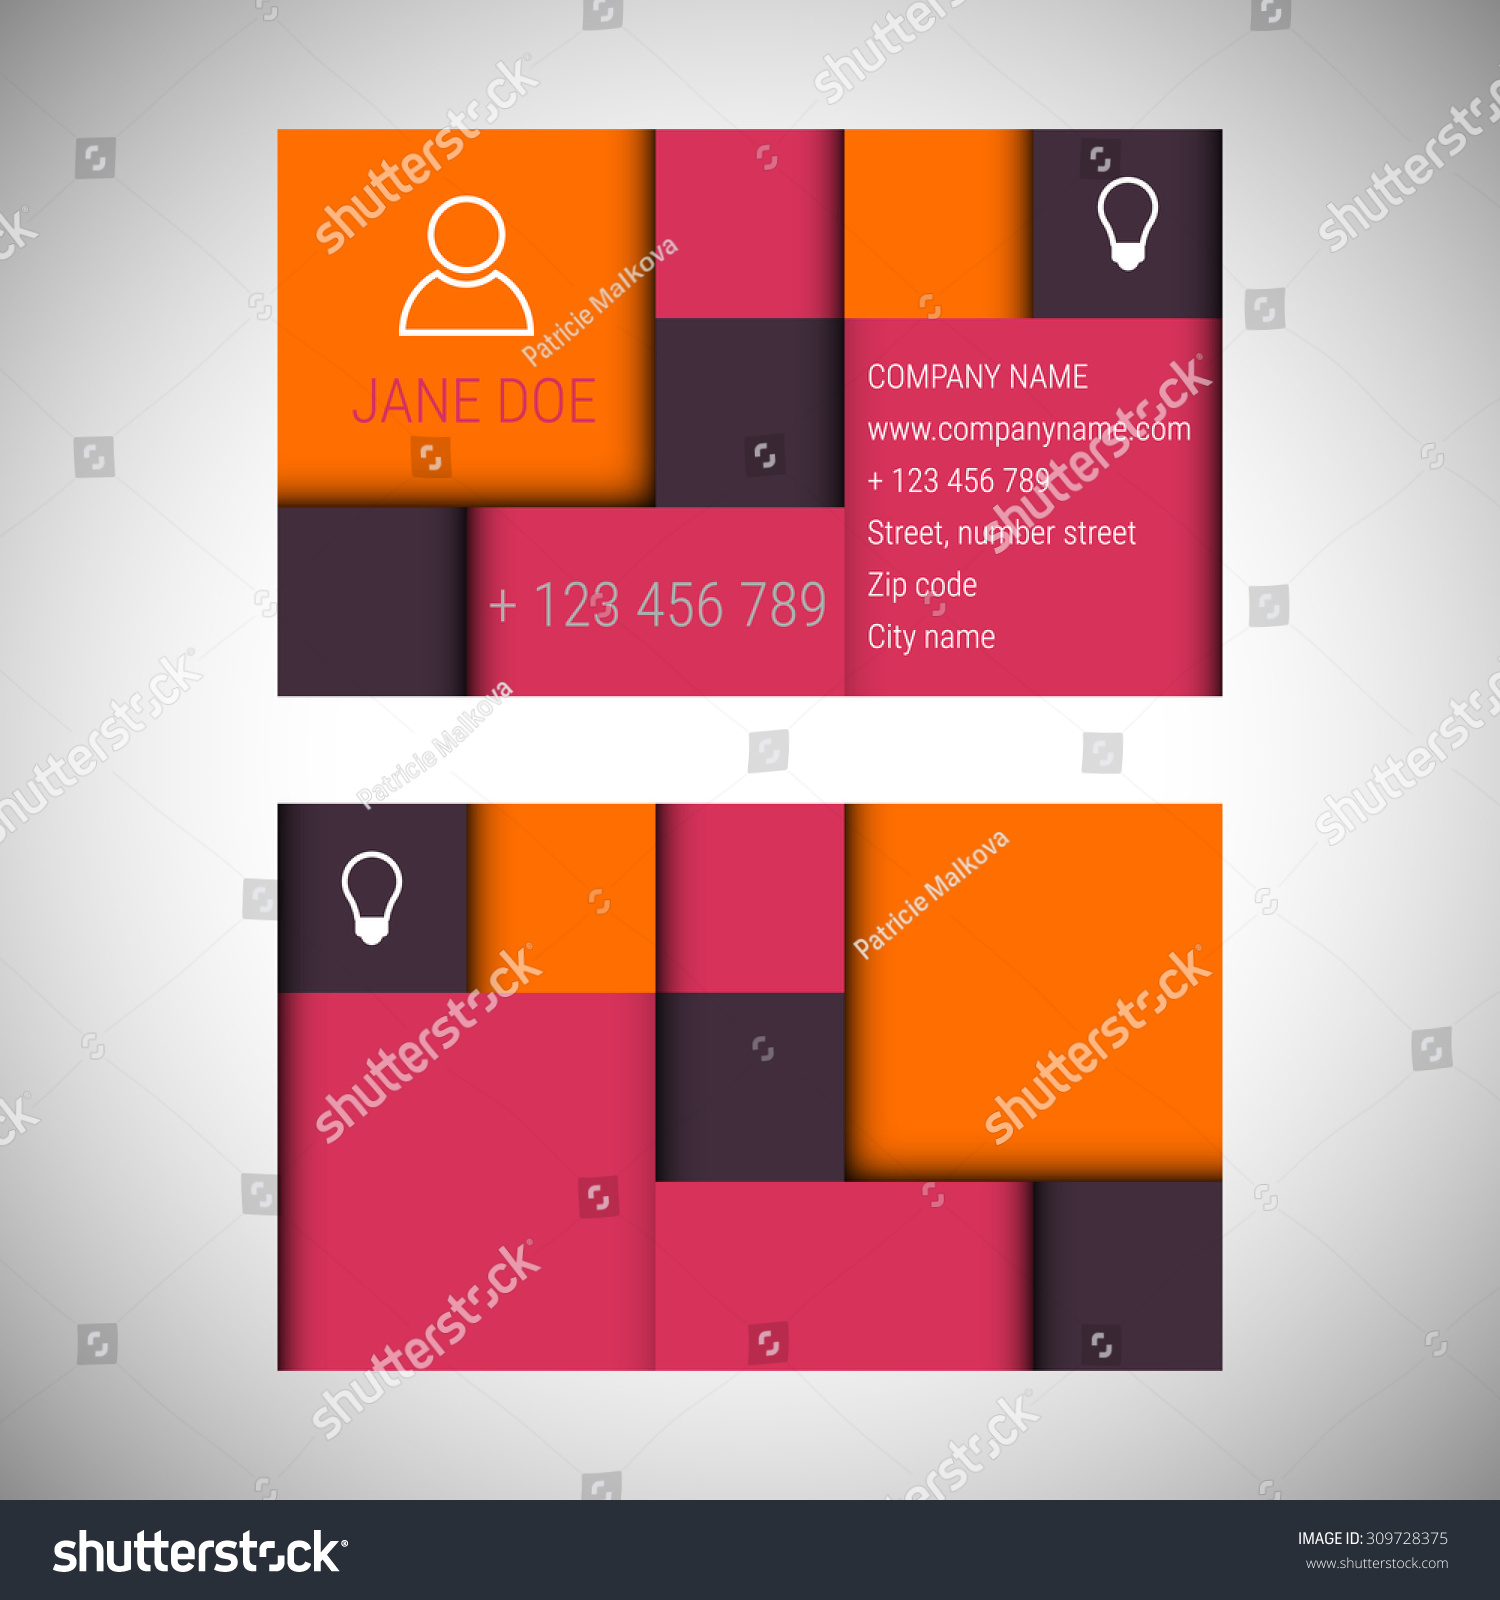 Business card abstract template flat design stock vector 309728375 business card abstract template with flat design and with icons business cards design business alramifo Image collections